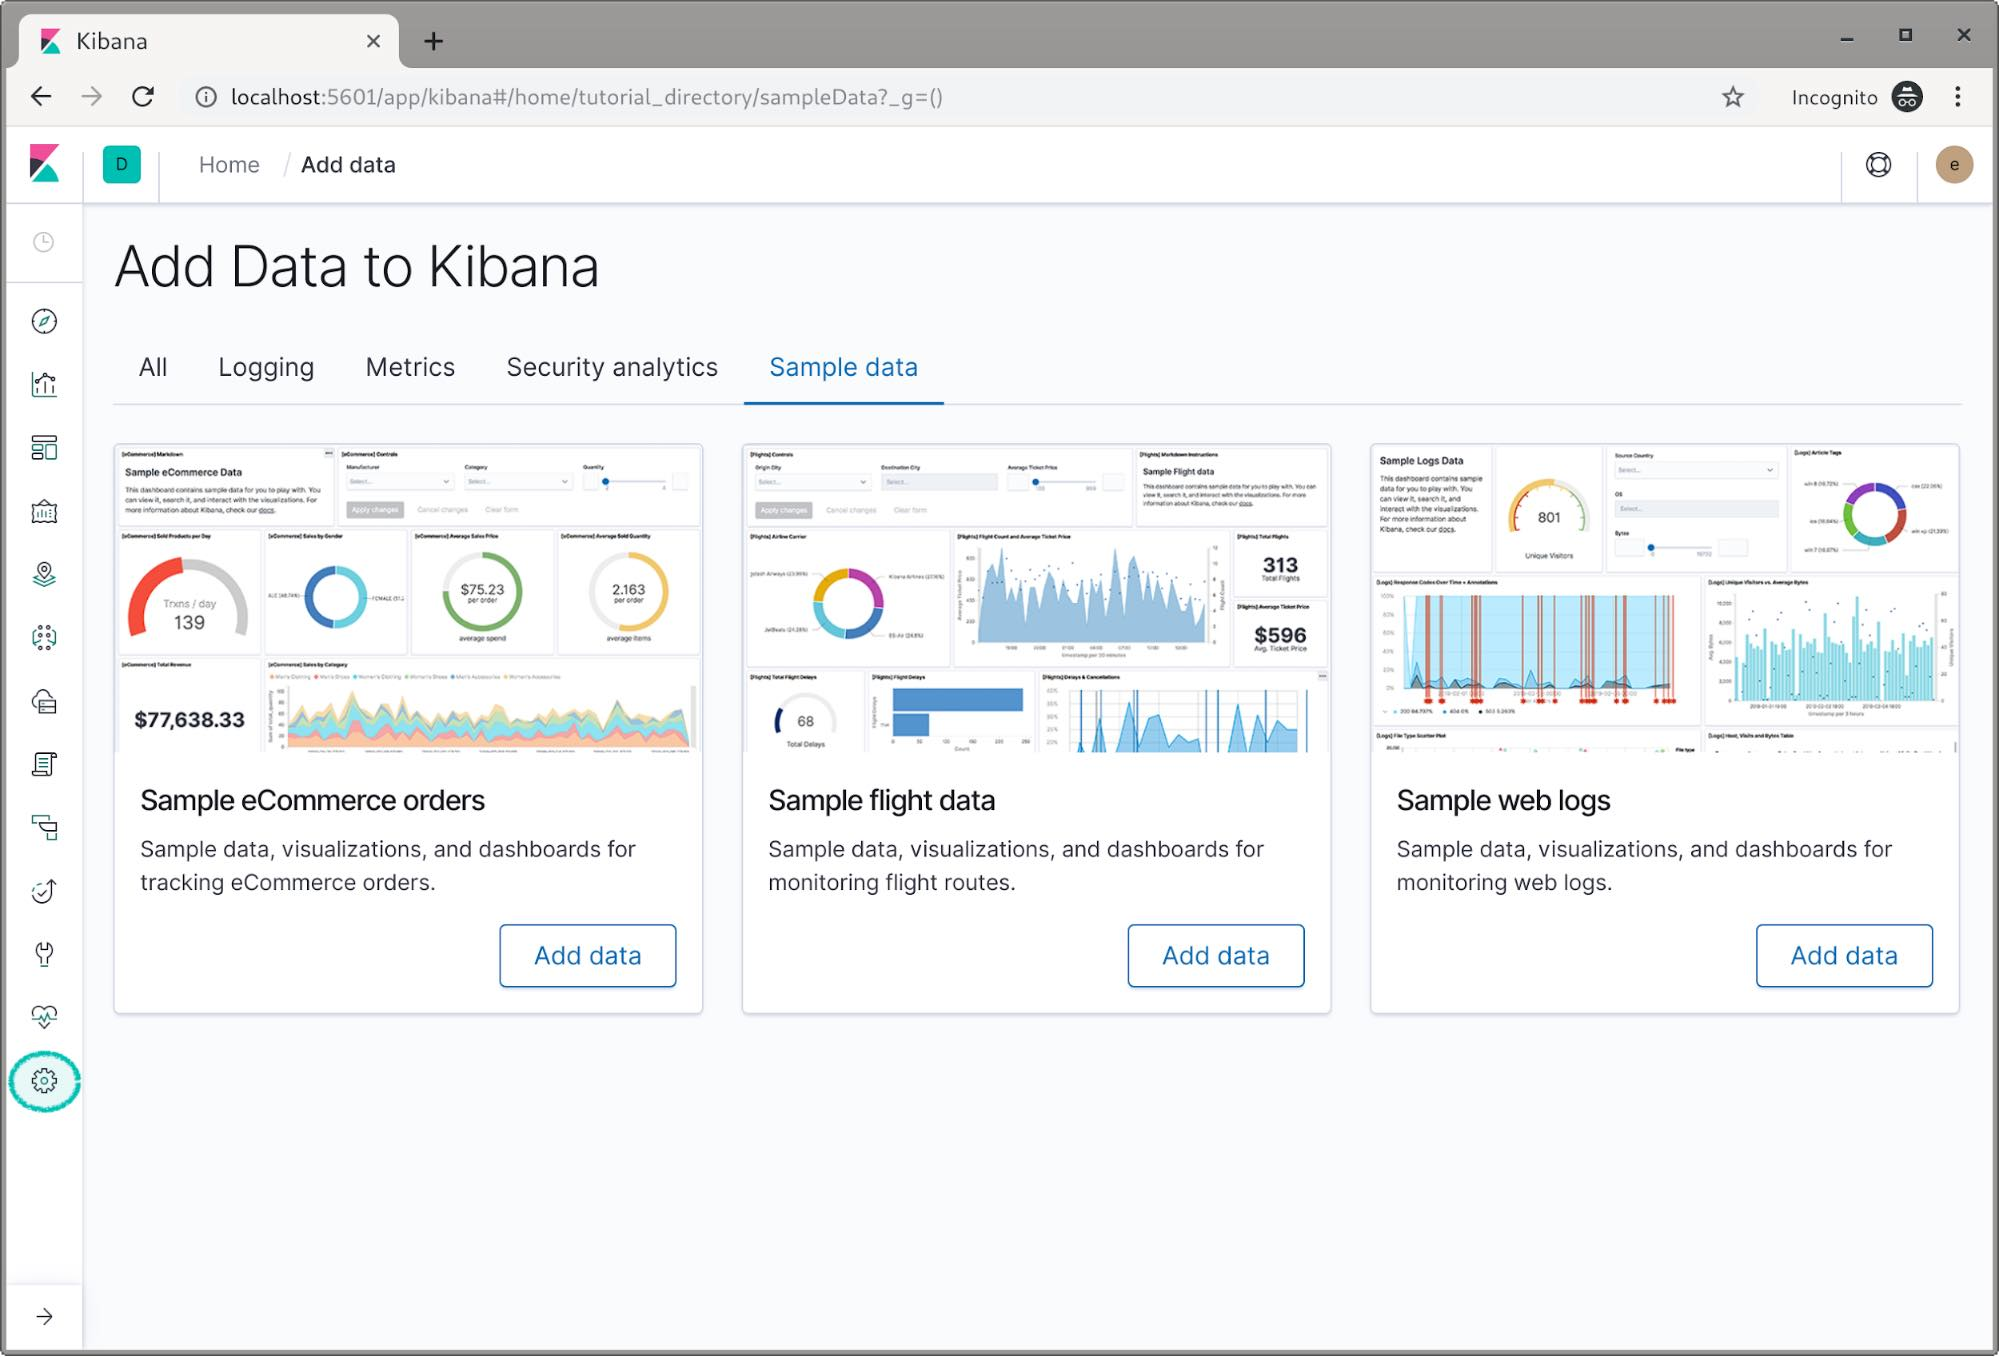 Entre no gerenciamento dentro do Kibana